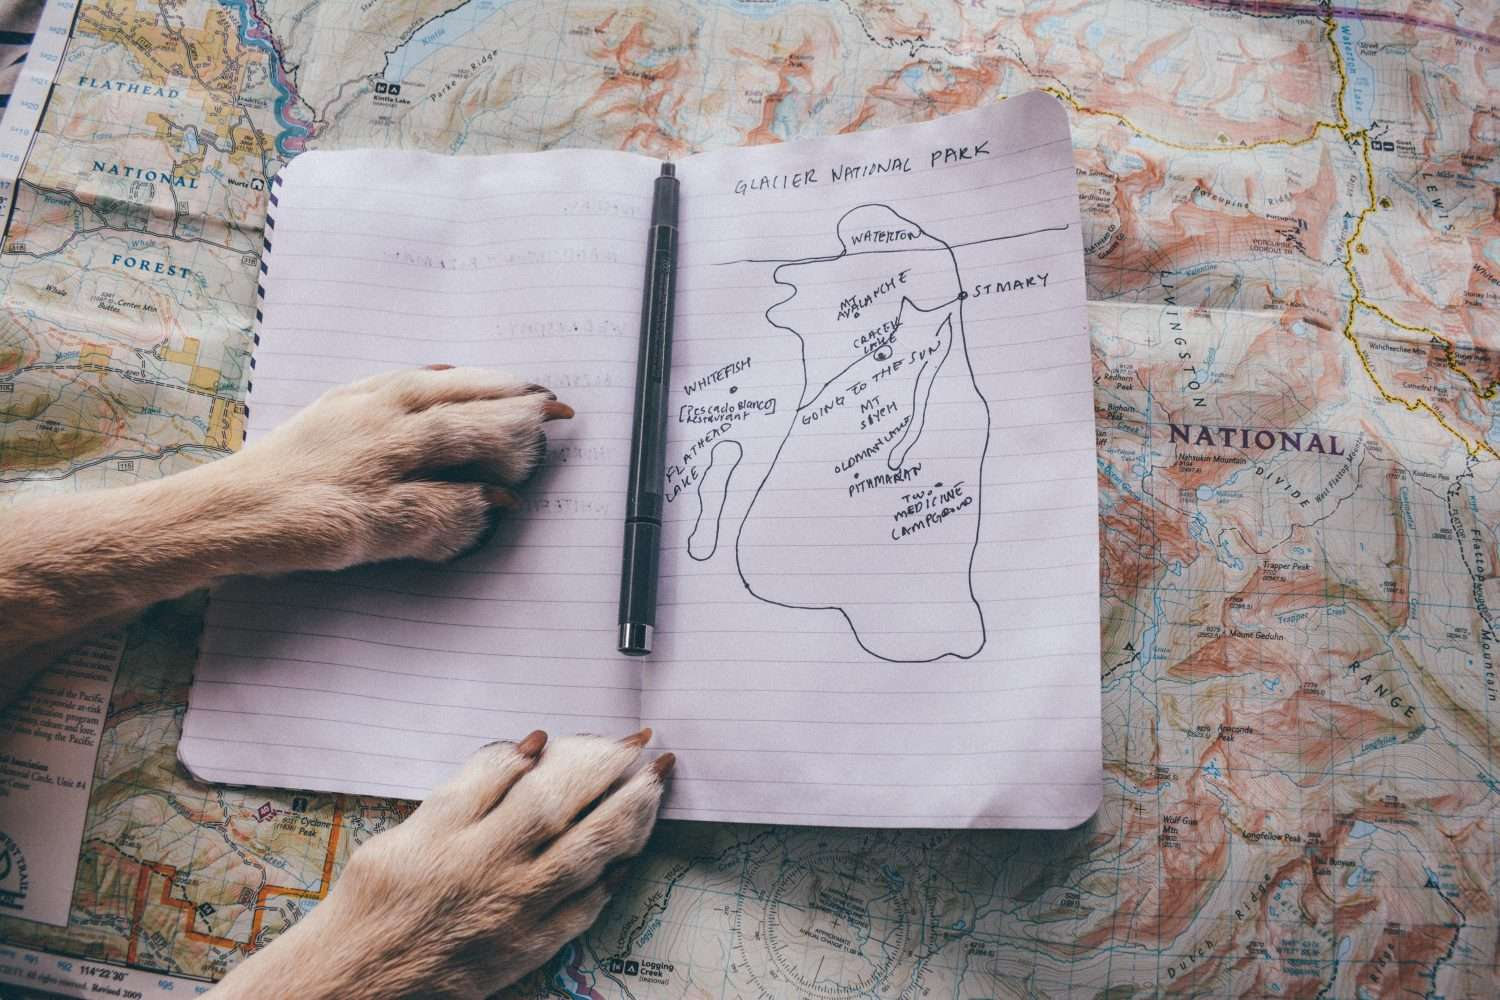 a dog's paws pressed against a handdrawn map of glacier national park